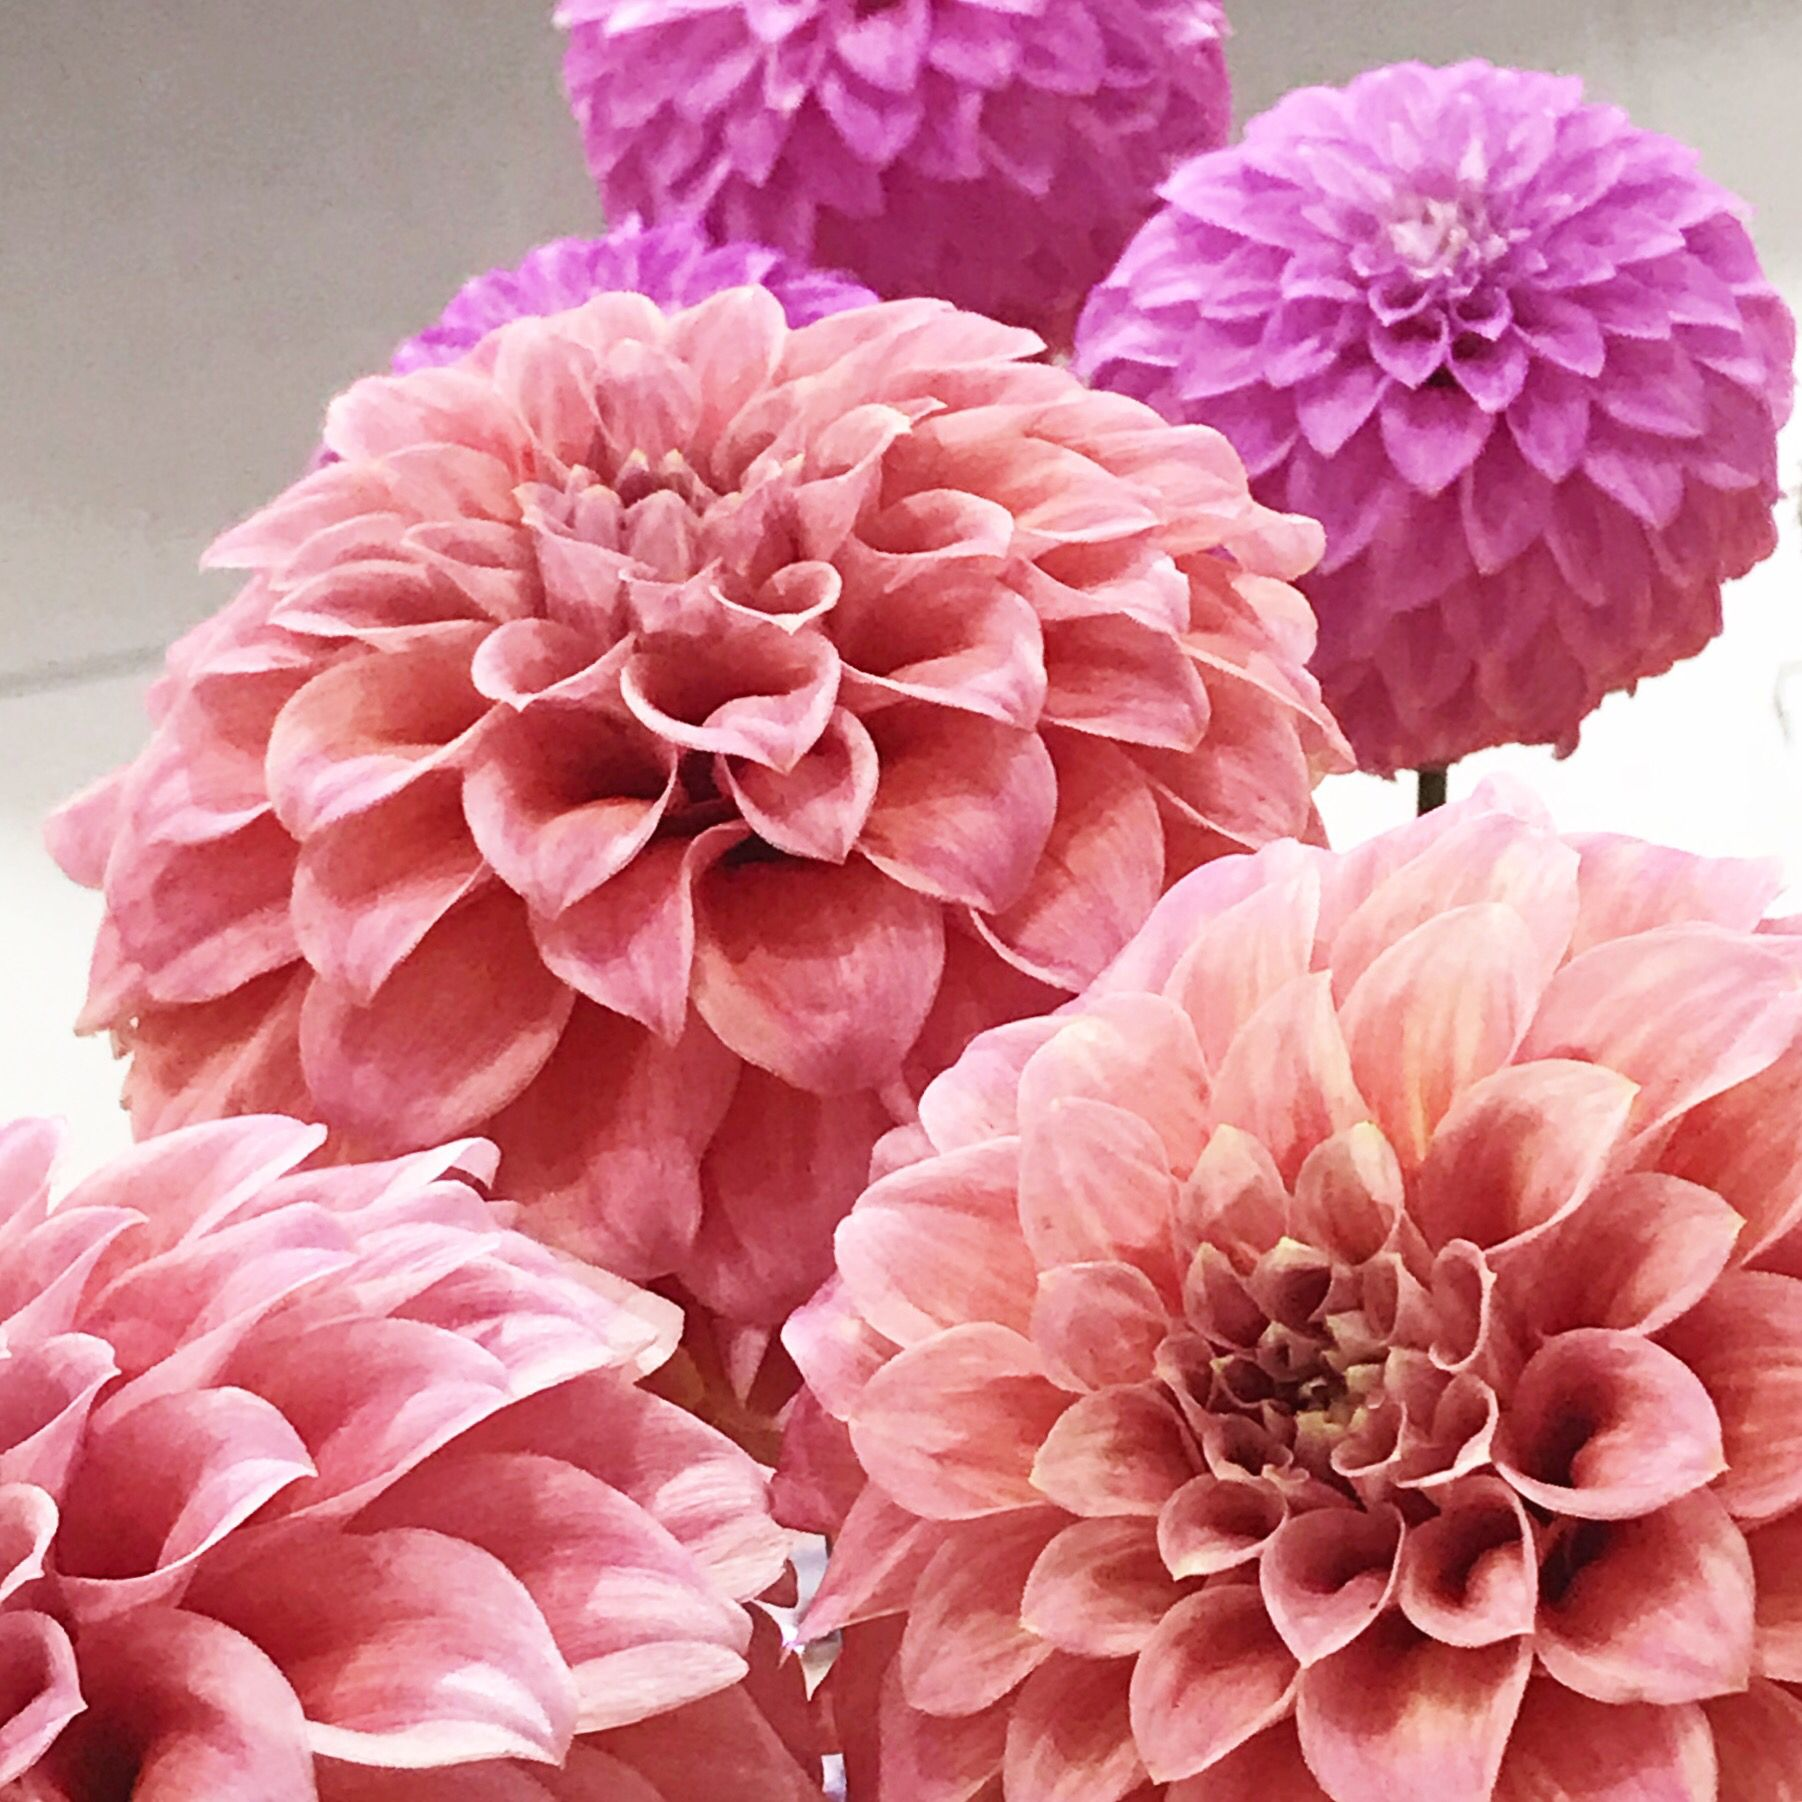 Dahlia Flowers In Shades Of Pink Flowers Shade Flowers Dahlia Flower